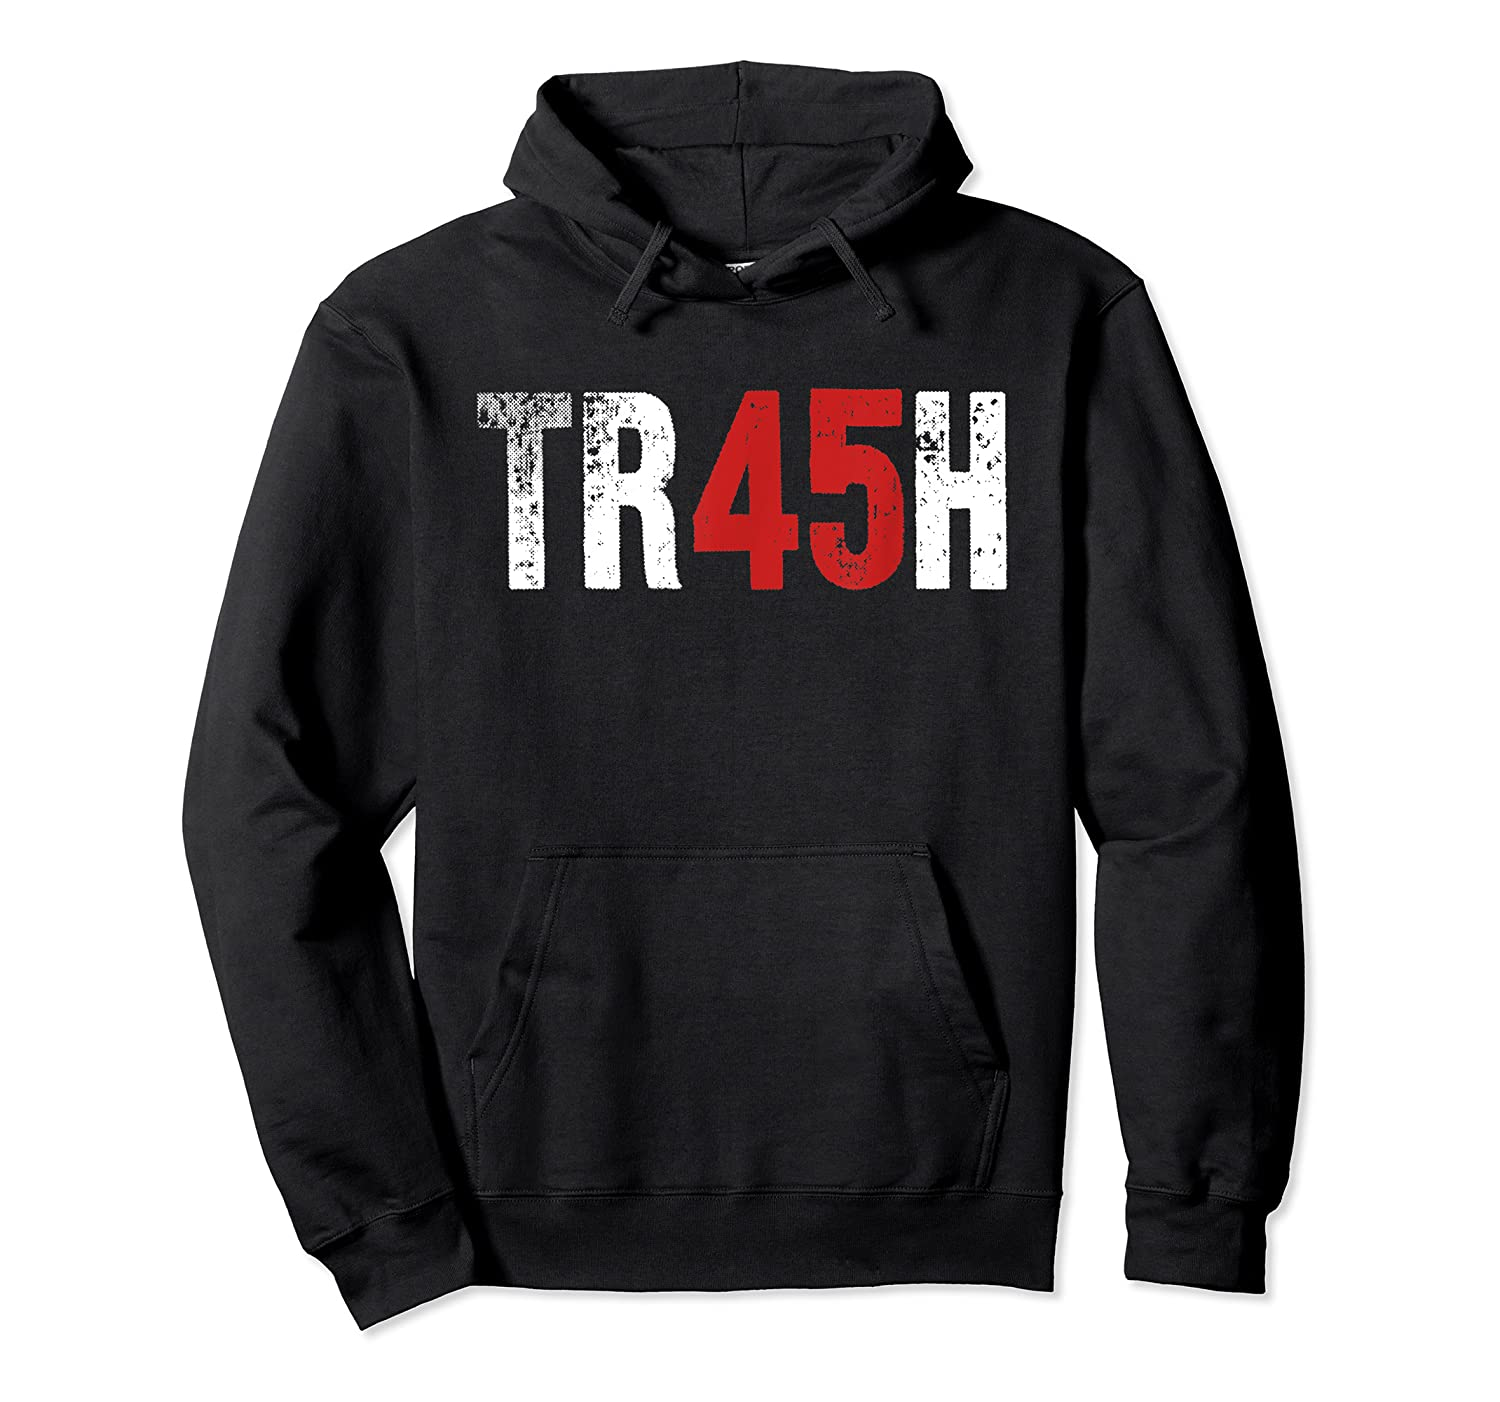 Trump Trash 45 T Shirt Impeach President Protest Rally Gift Unisex Pullover Hoodie